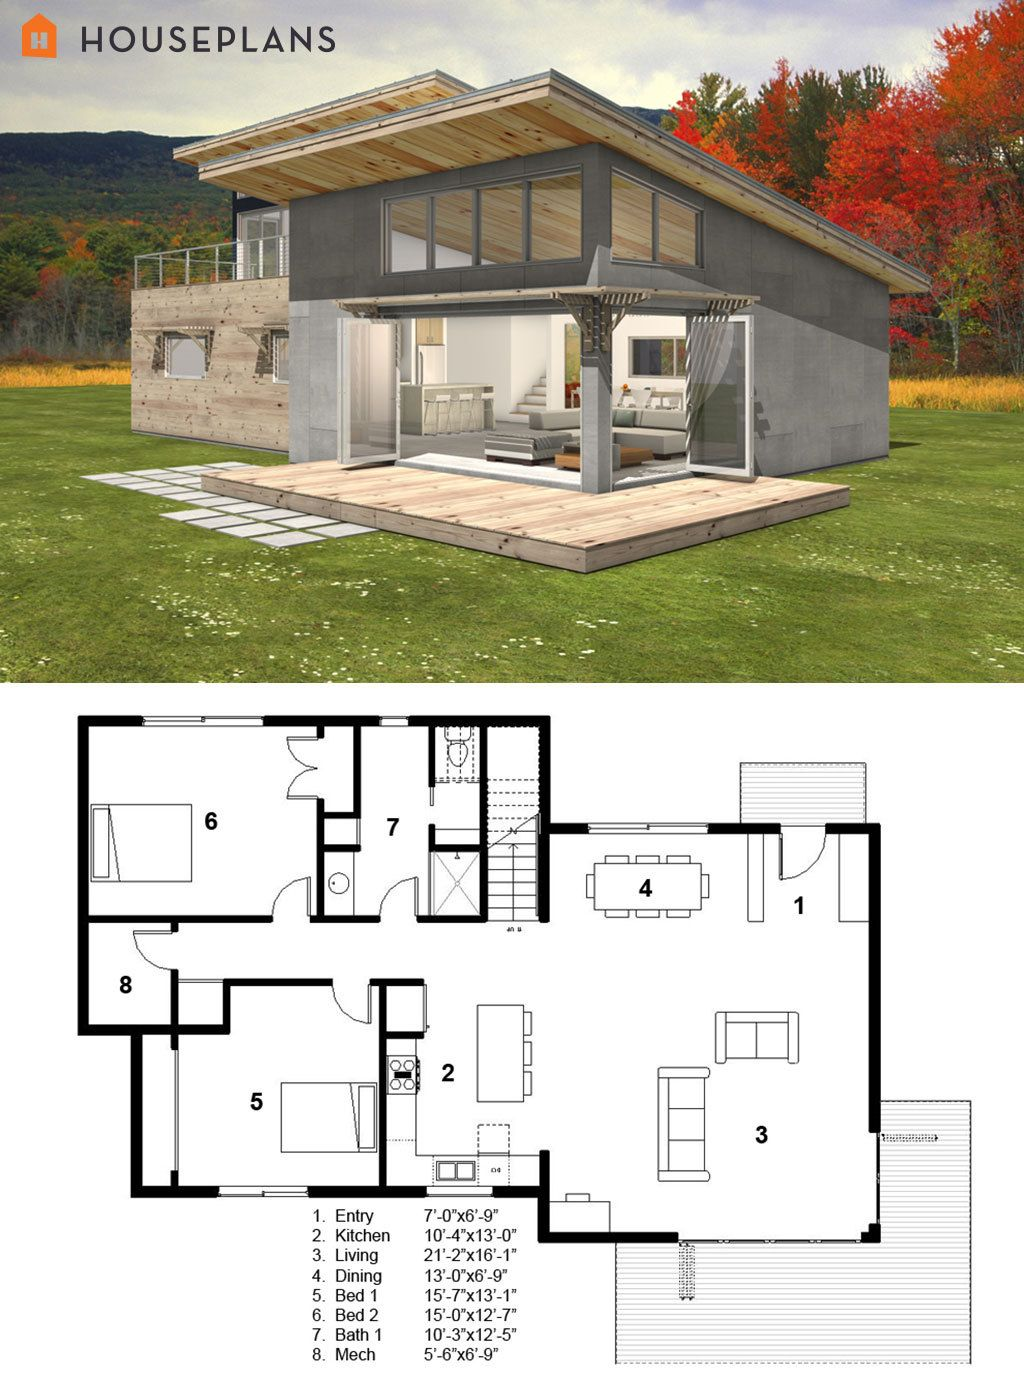 Small modern cabin house plan by freegreen energy for Modern apartment design plans